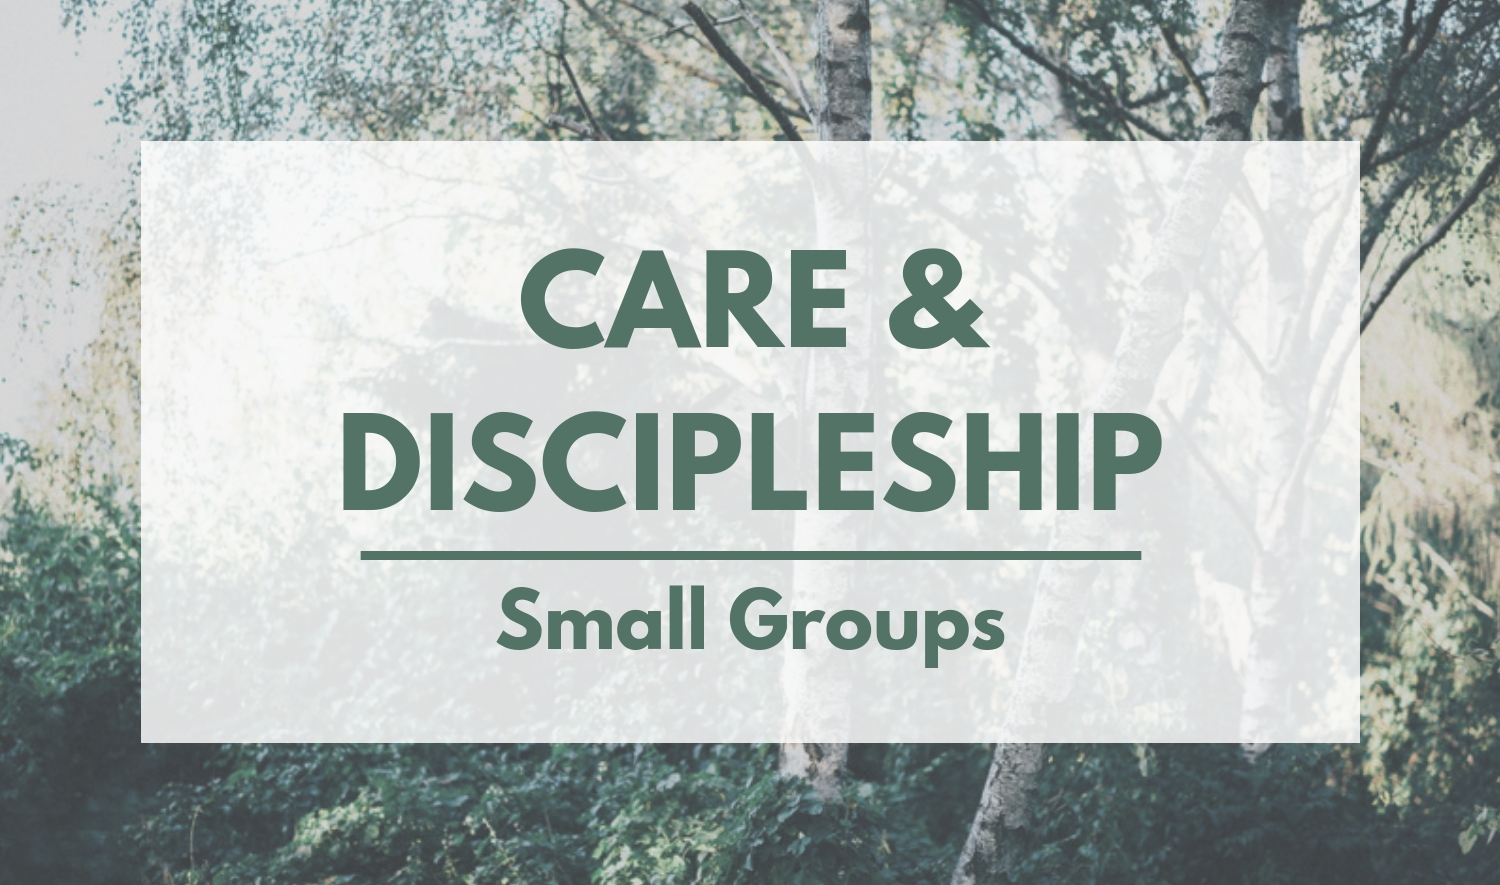 Care & Discipleship - Ministries